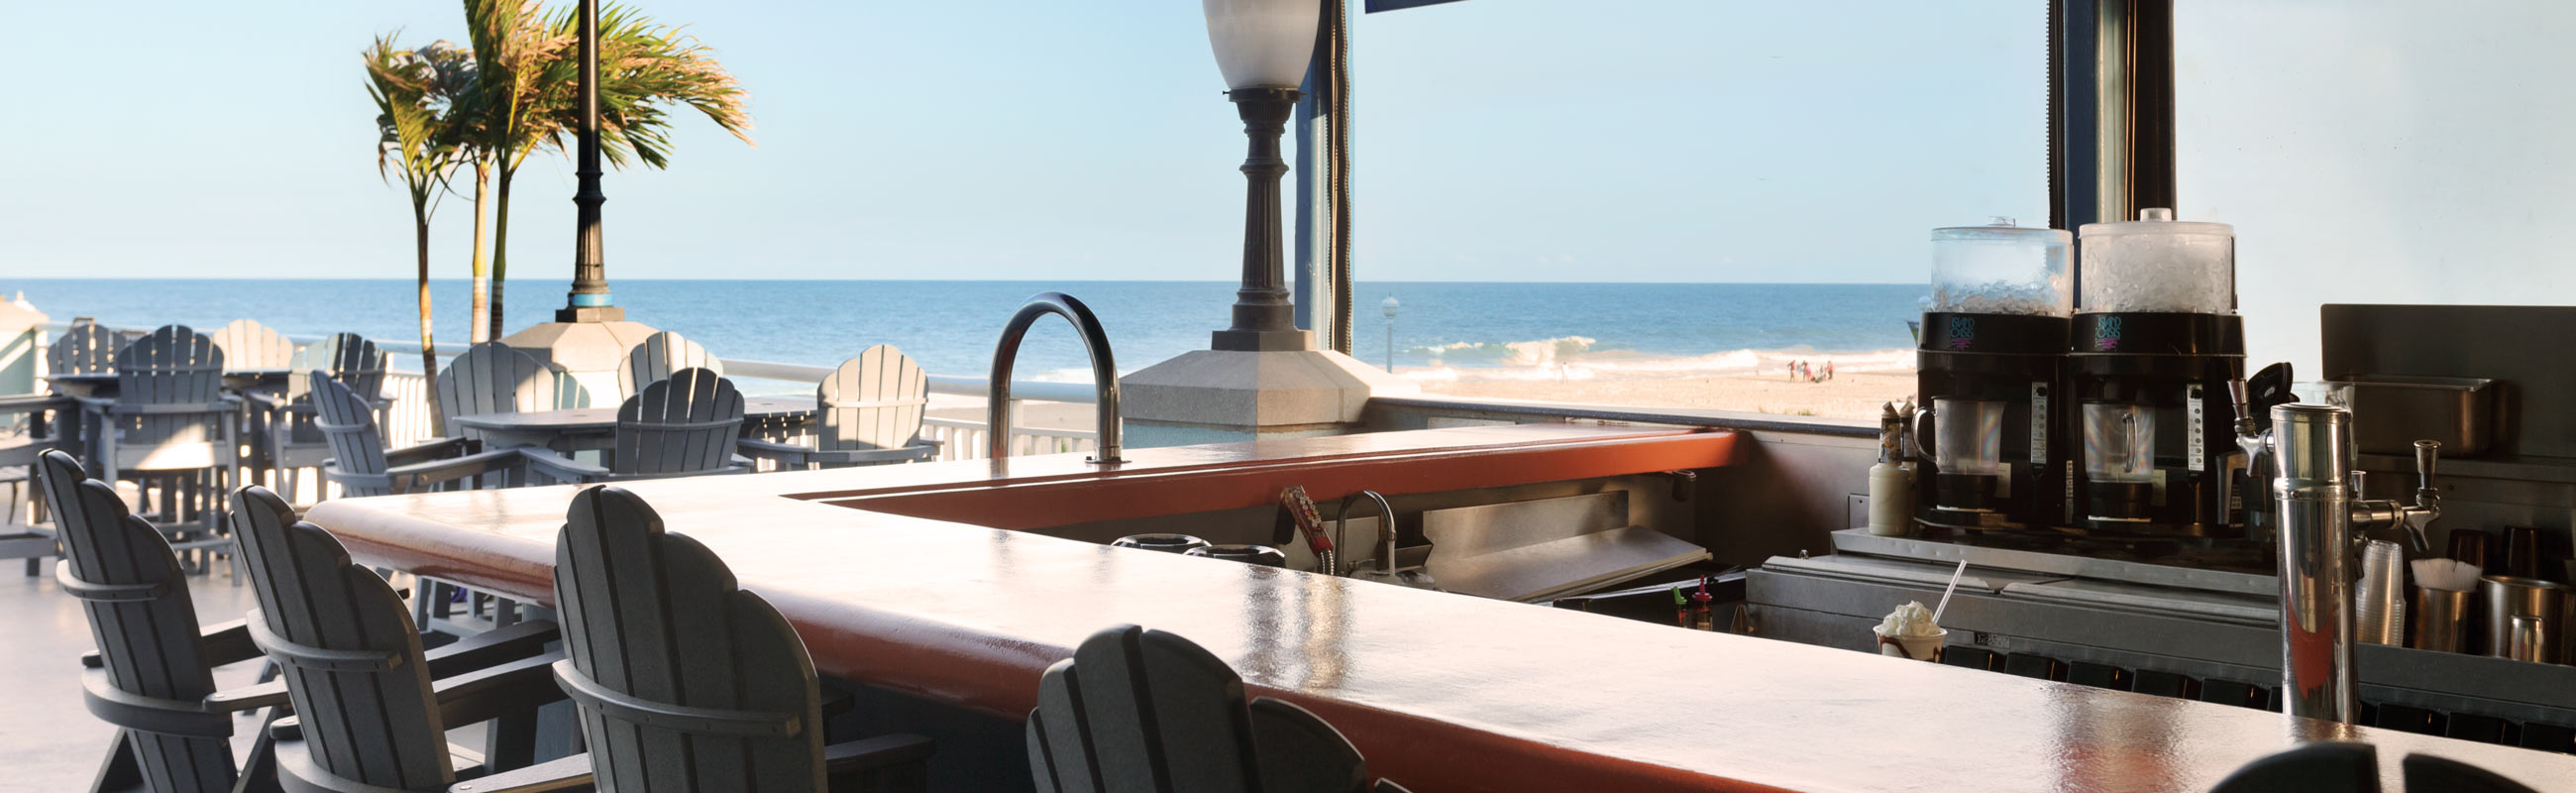 oceanfront dining in ocean city maryland